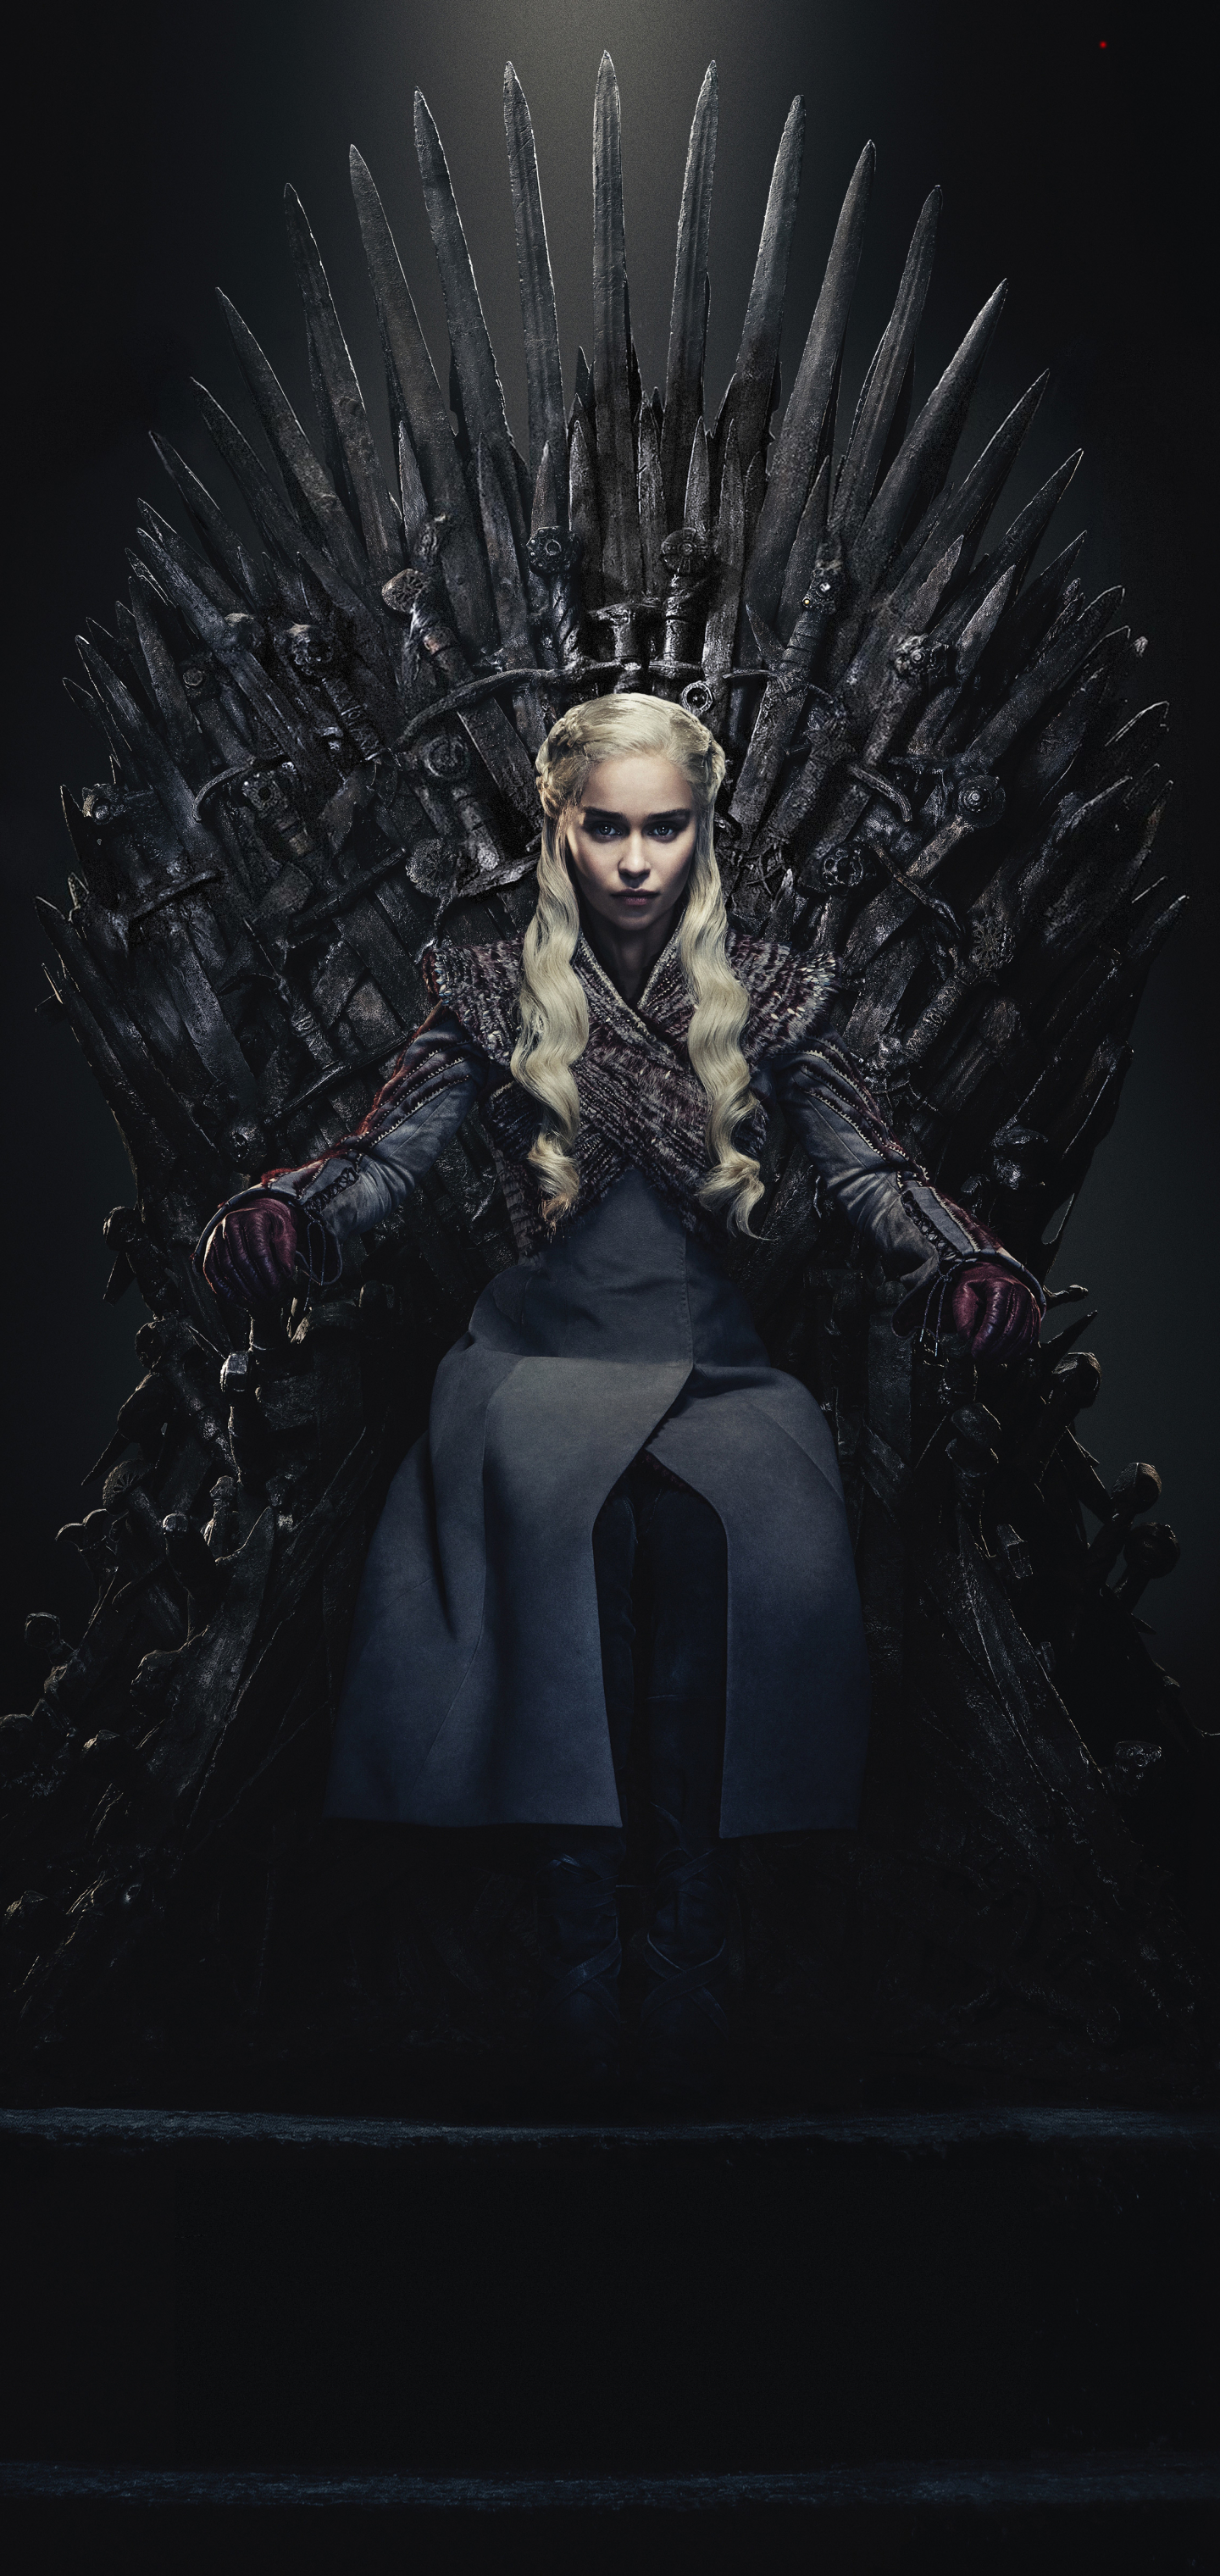 1440x3040 Daenerys Targaryen Queen Of the Ashes in The ...